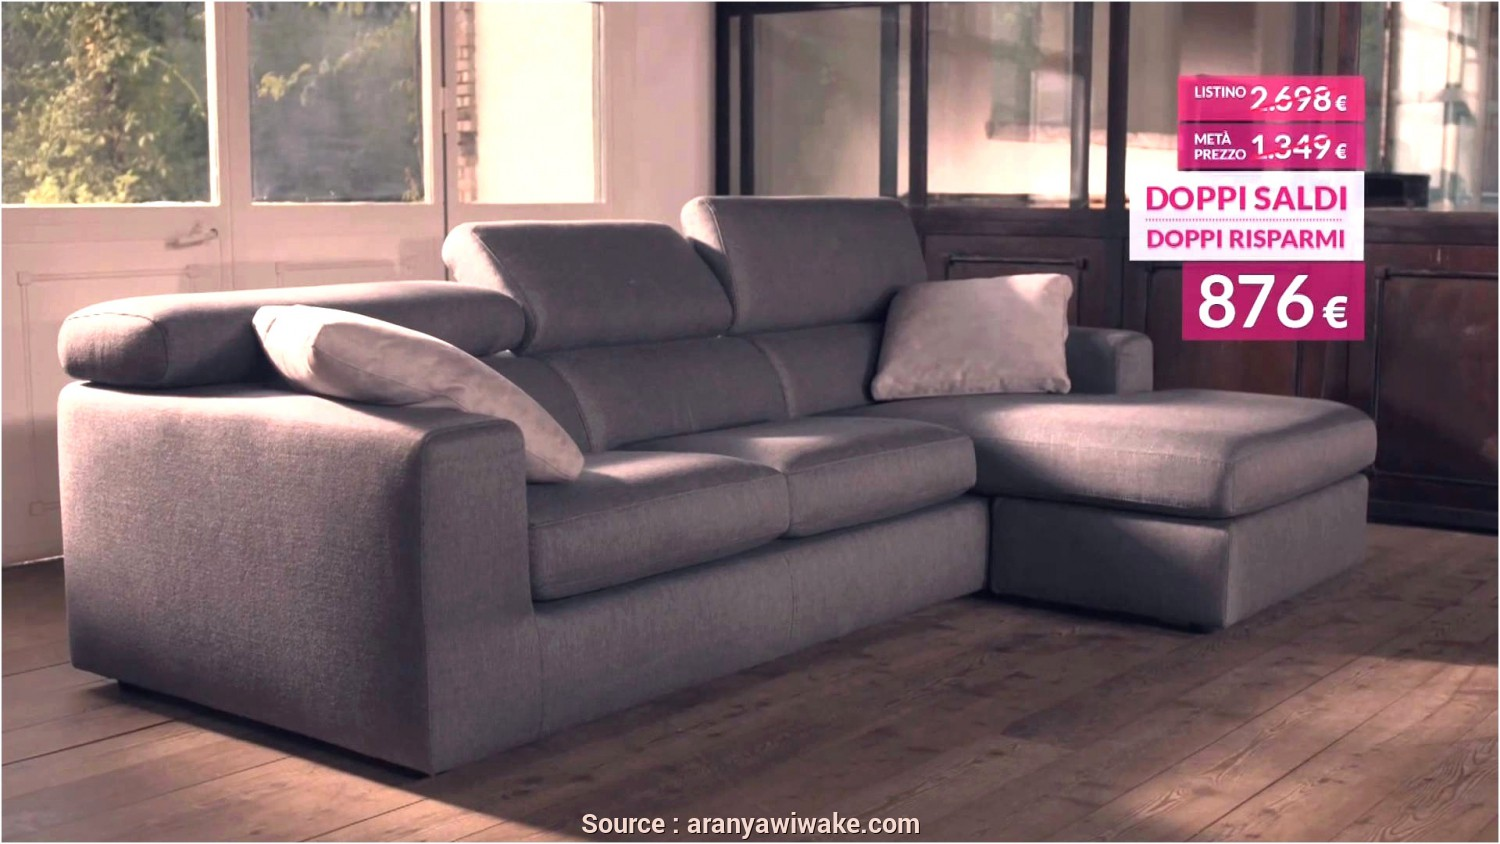 Divano Olga Chateau D'Ax, Semplice 50, Divani Chateau D Ax Leather Sofa Graphics 50 Photos Home Avec Divani Chateau D